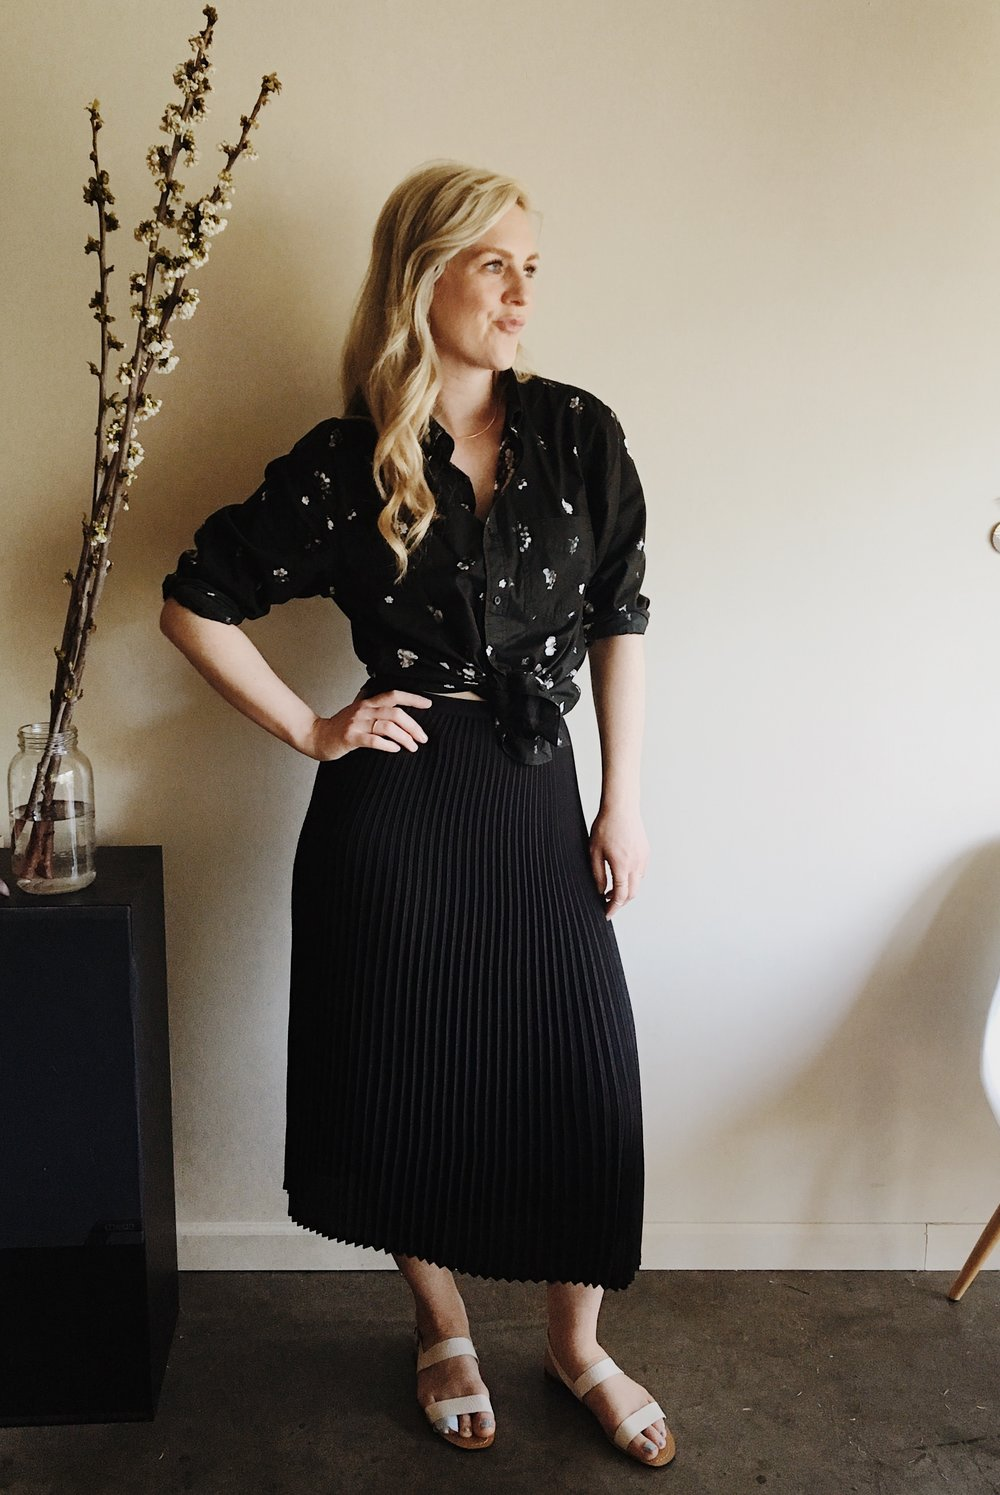 a month of Sundays in my Jude skirt